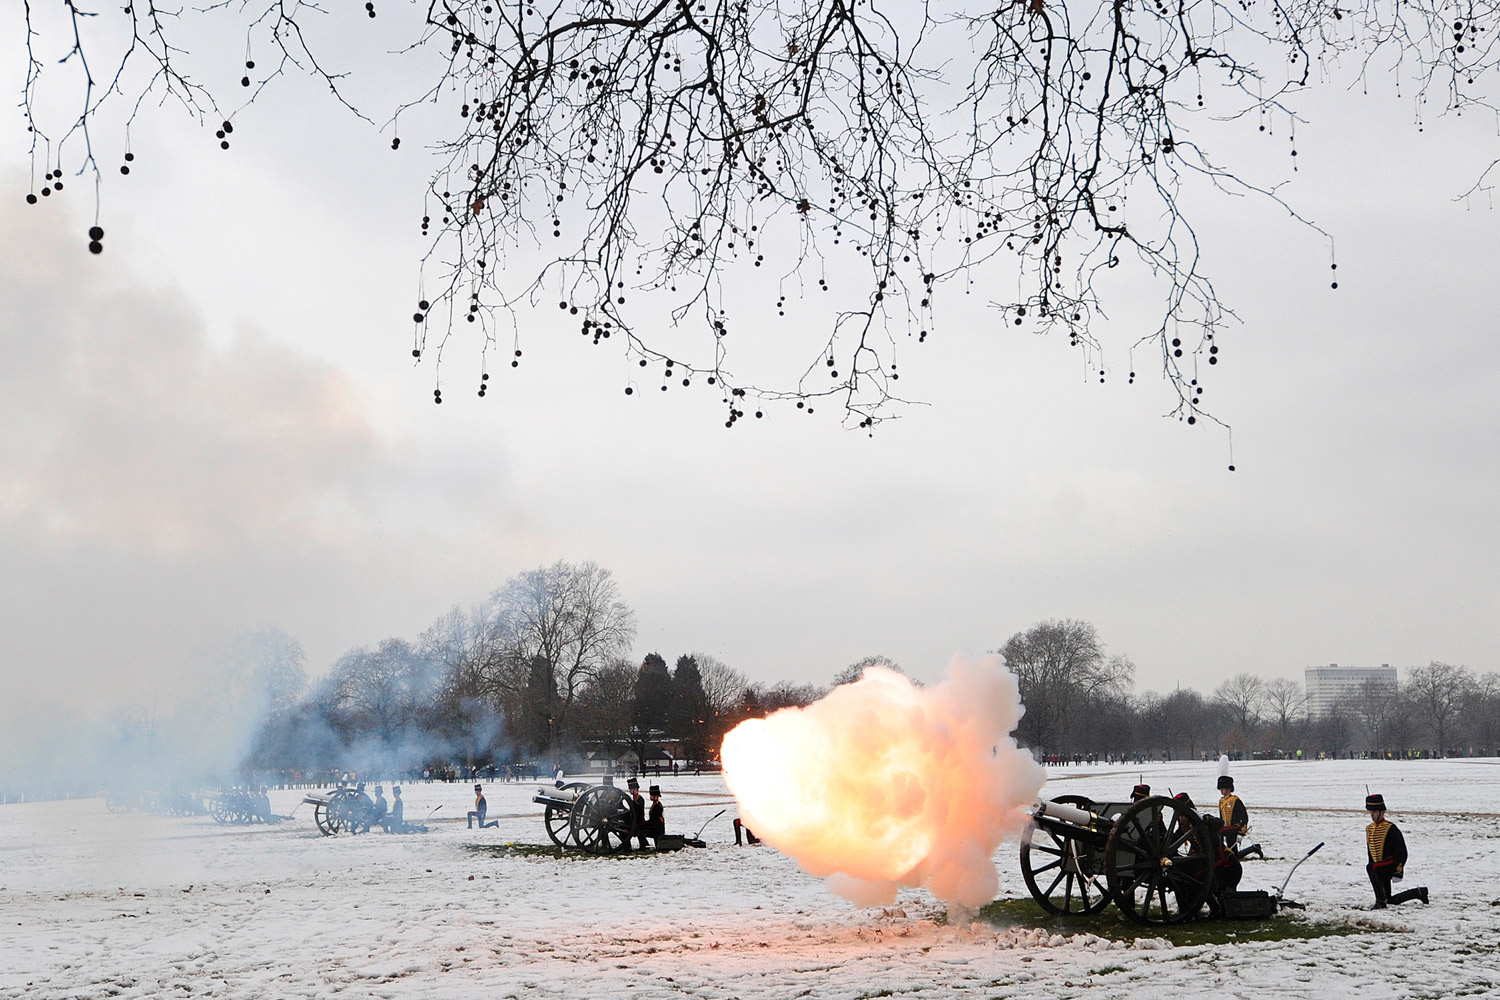 February 6, 2012. Soldiers from the King's Troop Royal Horse Artillery fire a 41 Gun Salute in Hyde Park, central London, to mark the start of Diamond Jubilee celebrations for Britain's Queen Elizabeth II.